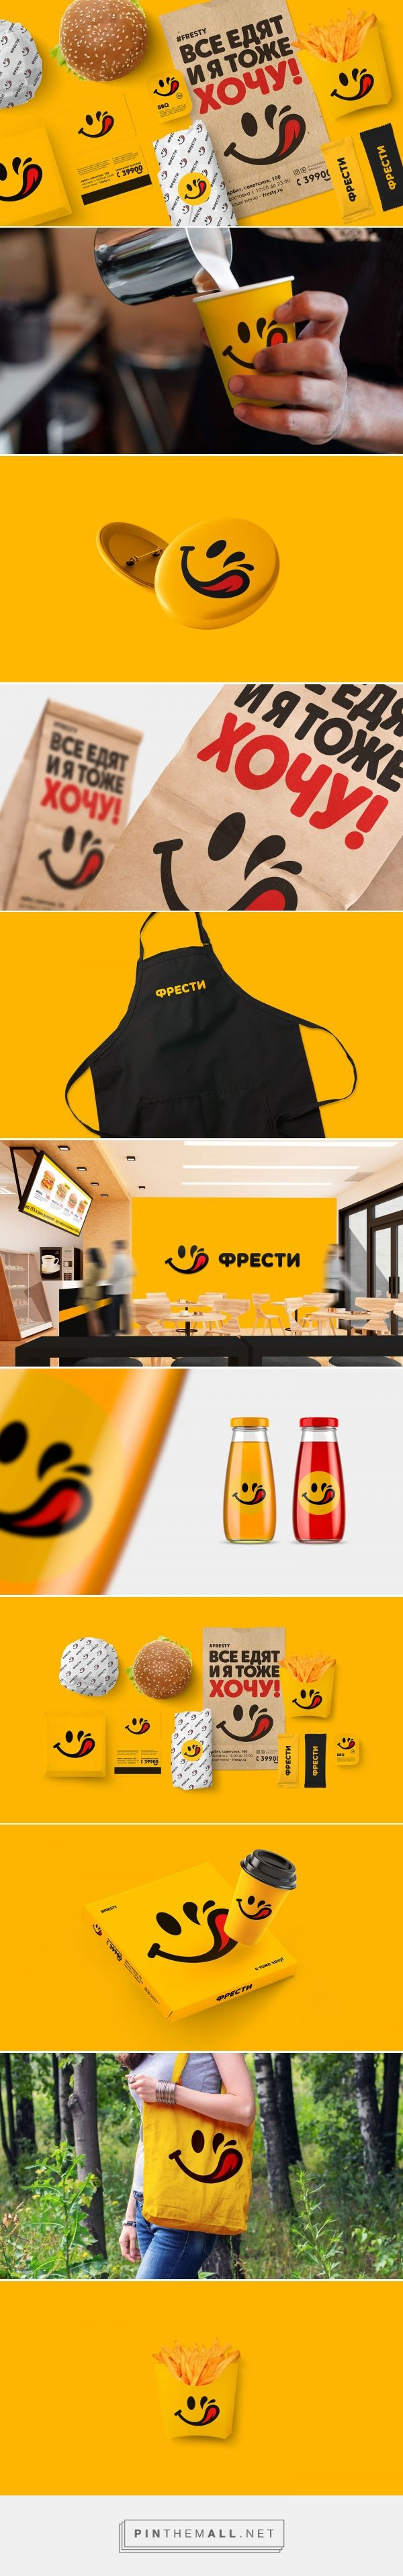 Fresty Fast Food Restaurant Branding by Konstantin Polyakov | Fivestar Branding Agency – Design and Branding Agency & Curated Inspiration Gallery